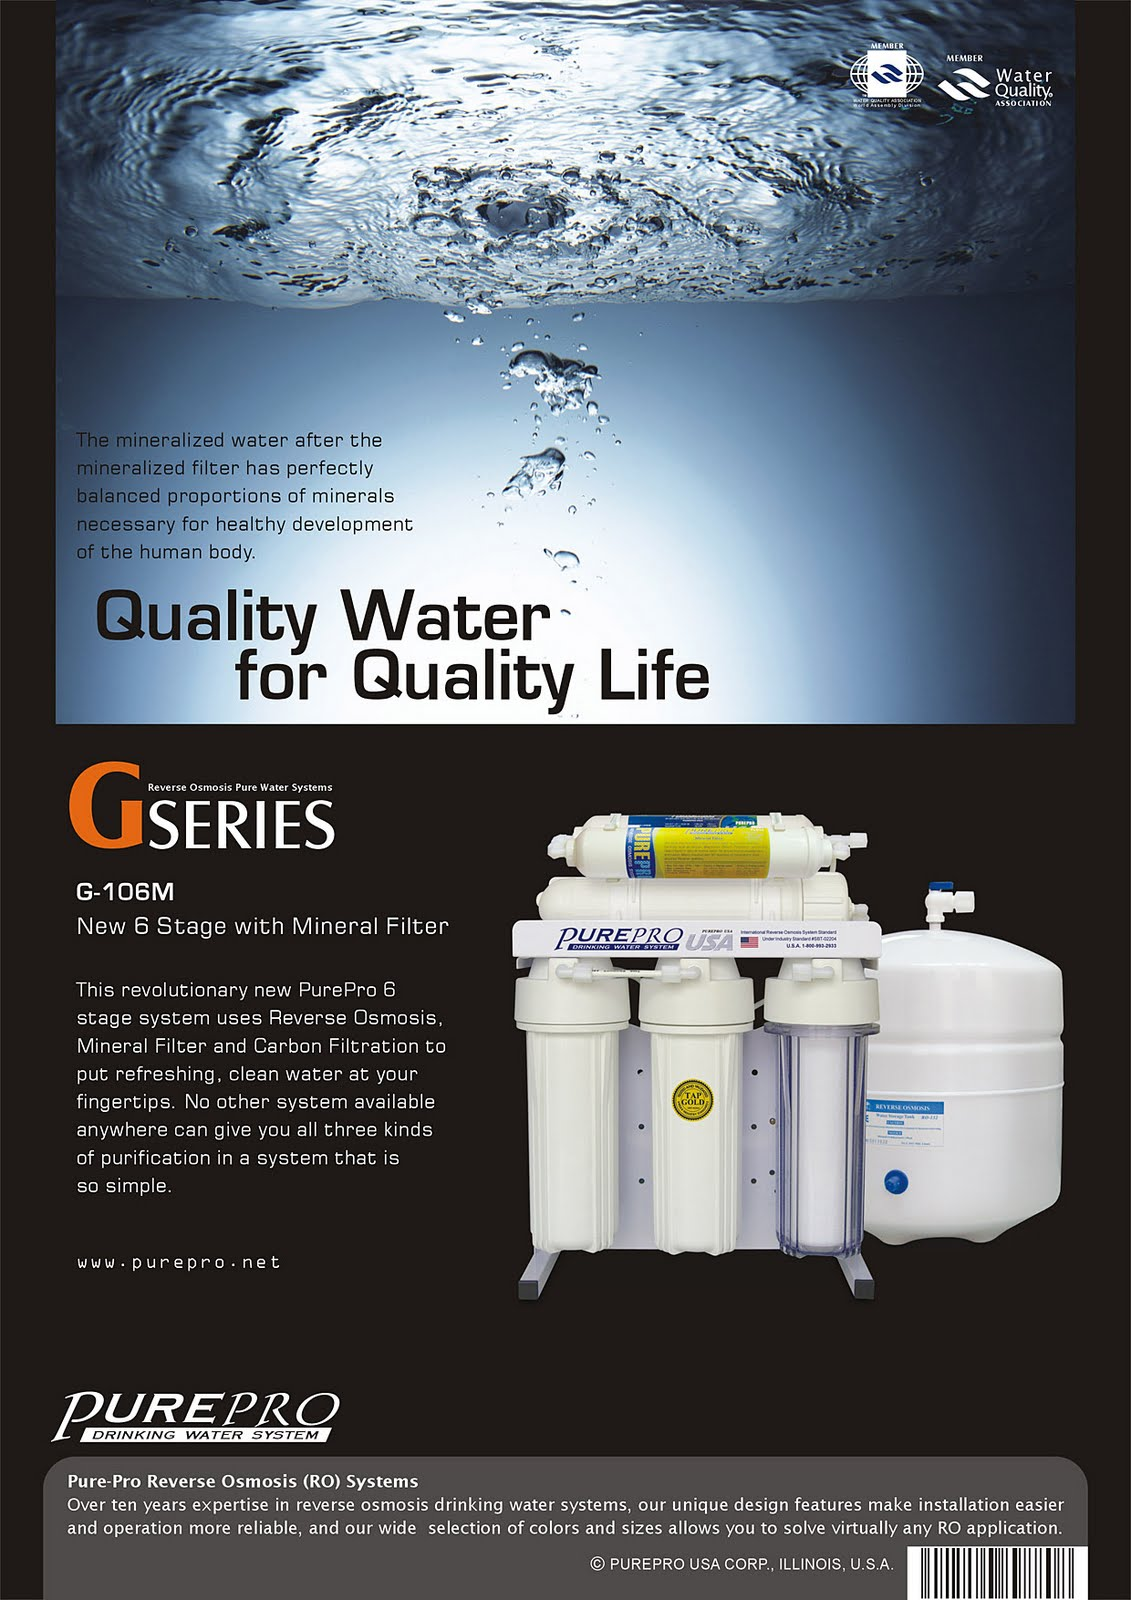 PurePro® G-106M Reverse Osmosis Water Filtration System